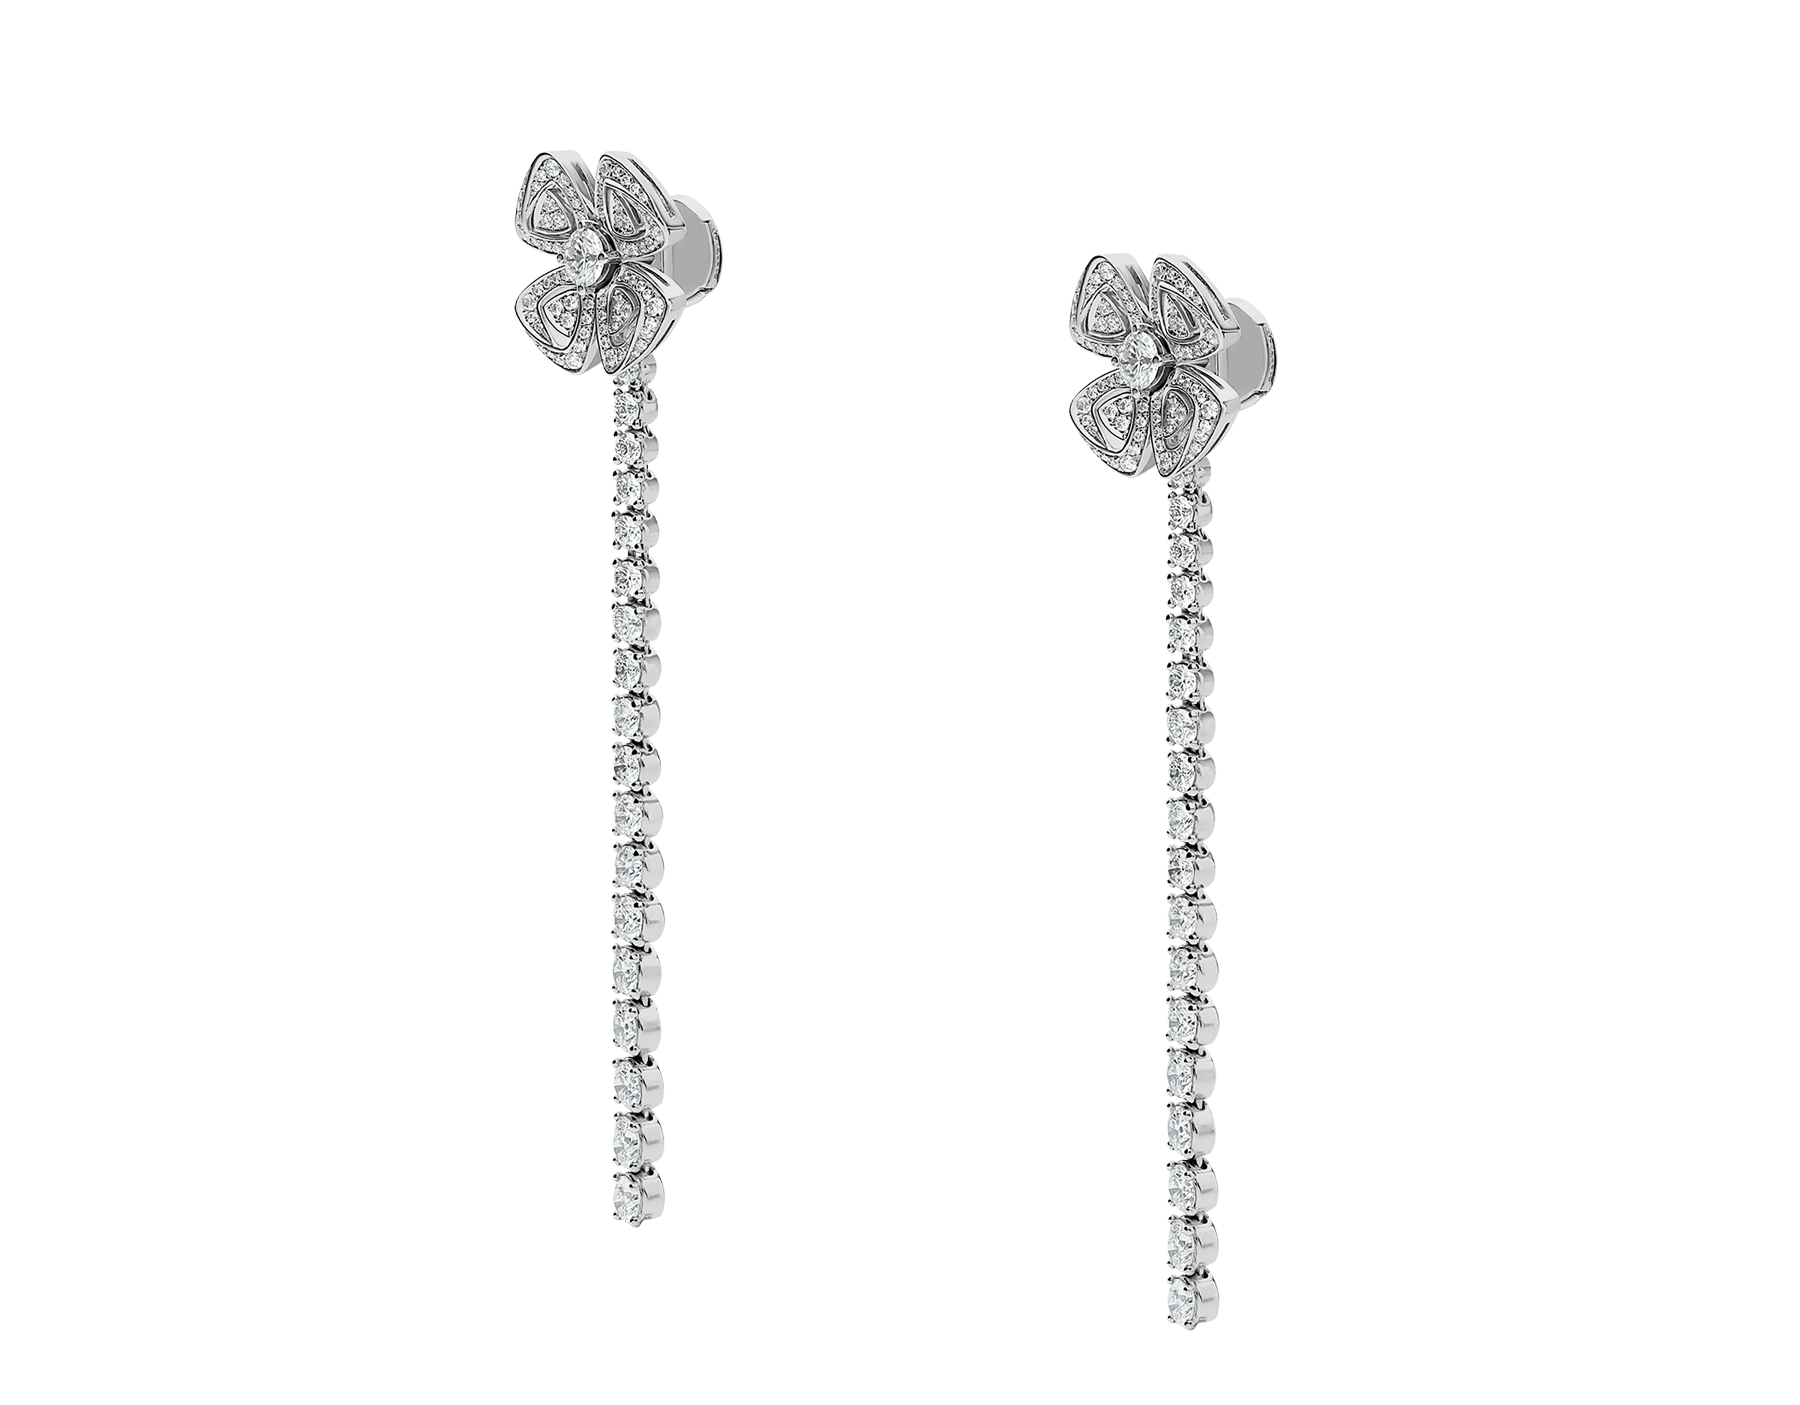 Fiorever 18 kt white gold convertible earrings set with brilliant-cut diamonds (2.81 ct) and pavé diamonds (0.26 ct) 358158 image 3